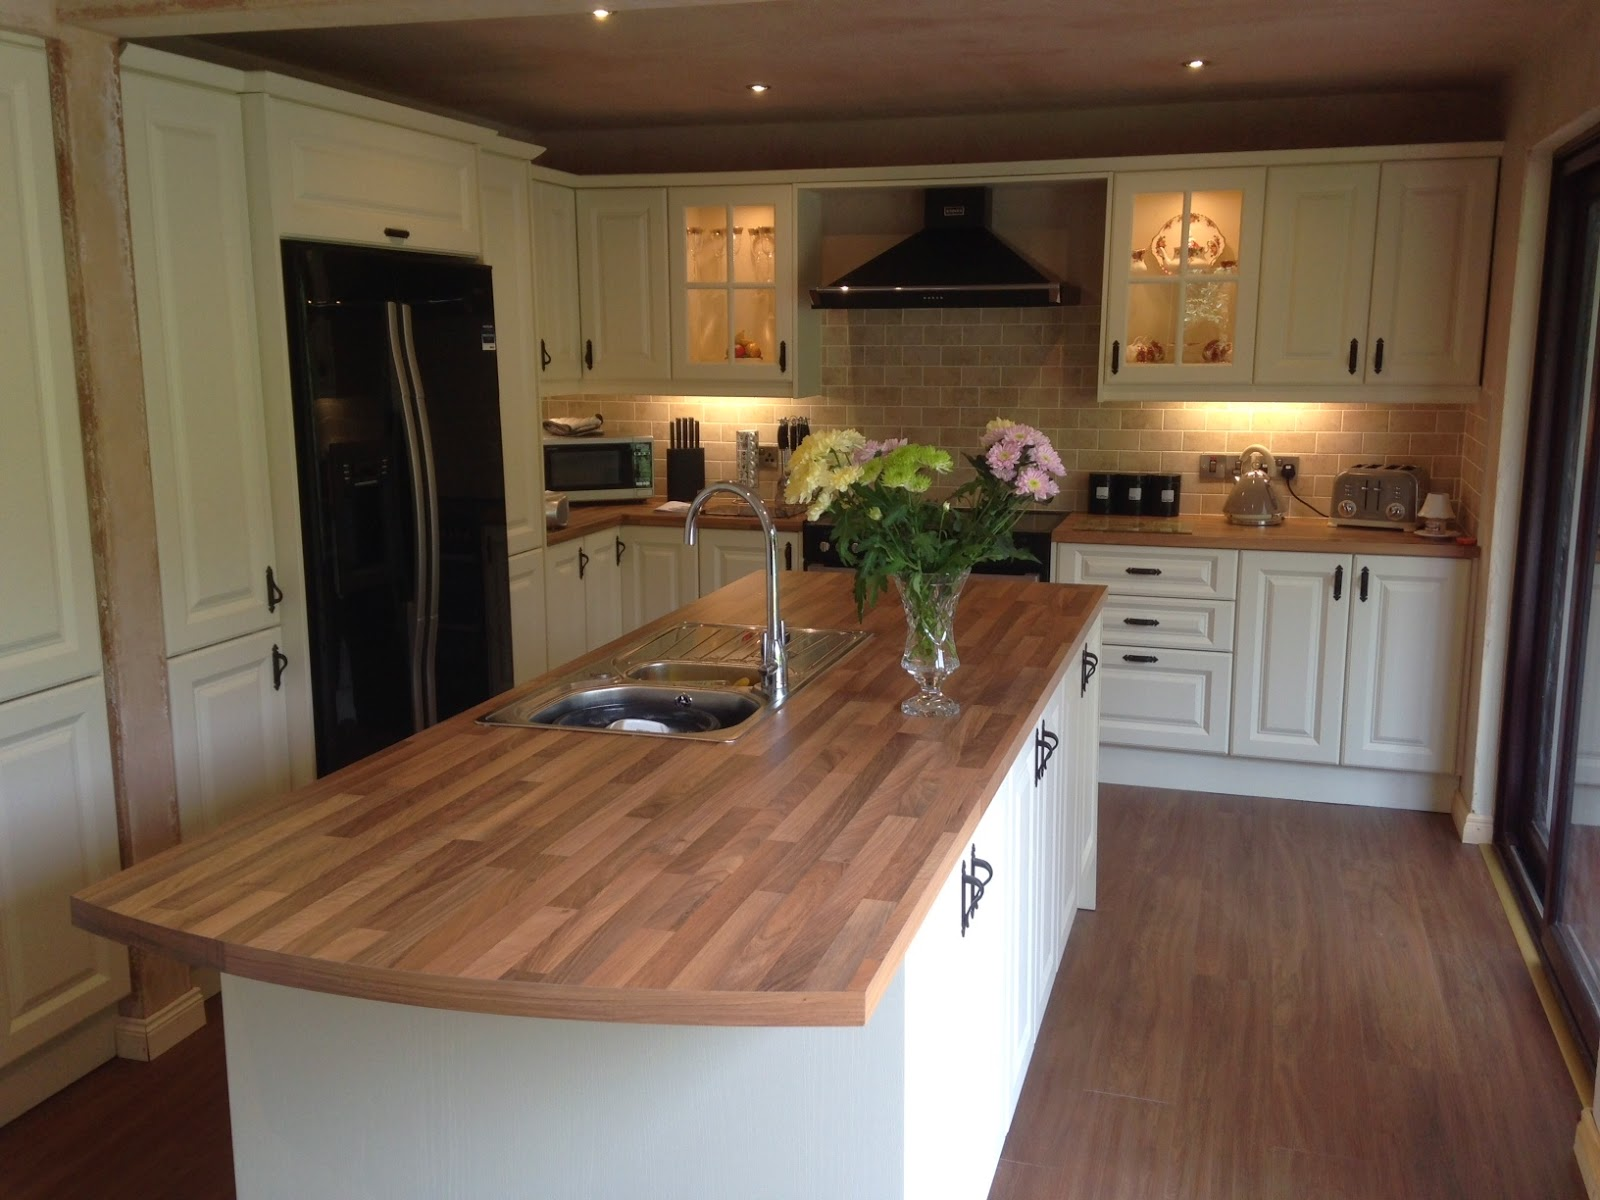 Kitchens Direct NI Northern Ireland Kitchens in New Builds